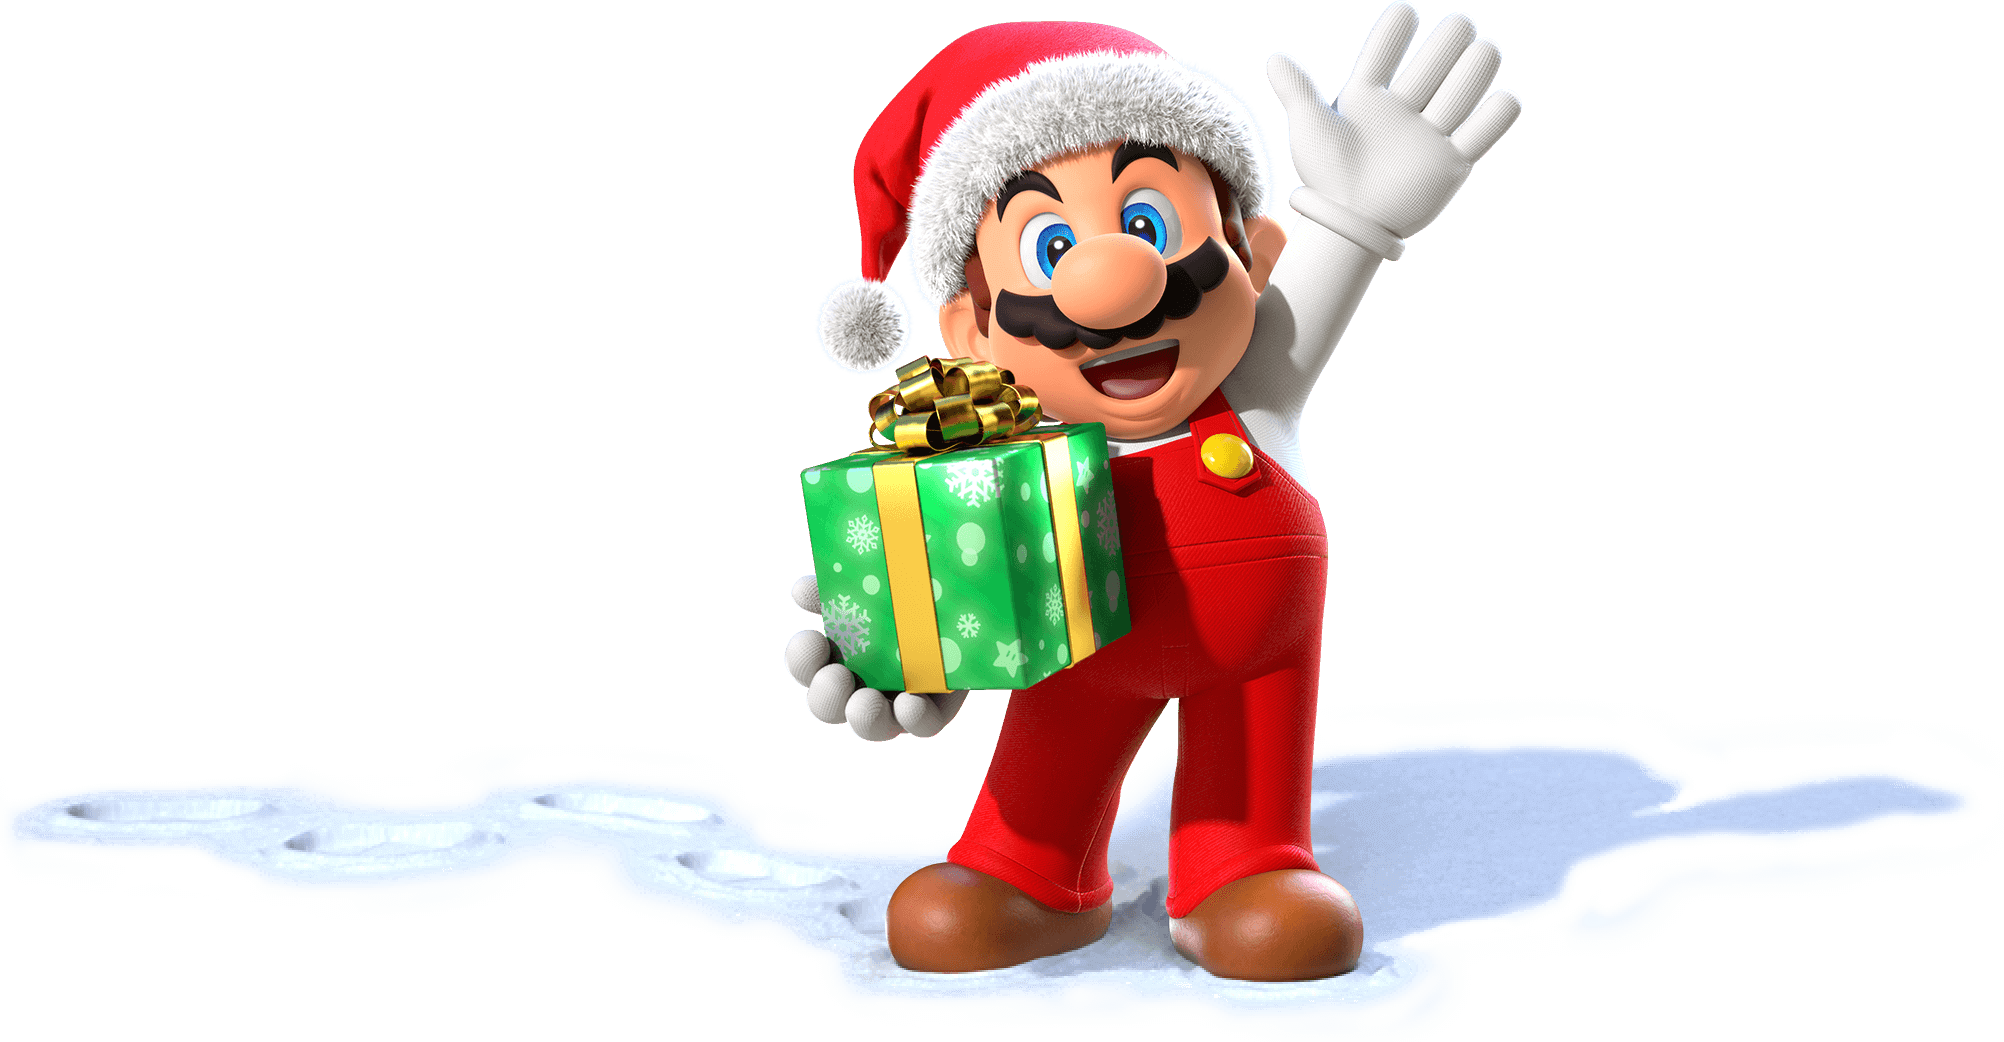 Super Mario Christmas.Merry Christmas From Mario Super Mario Know Your Meme